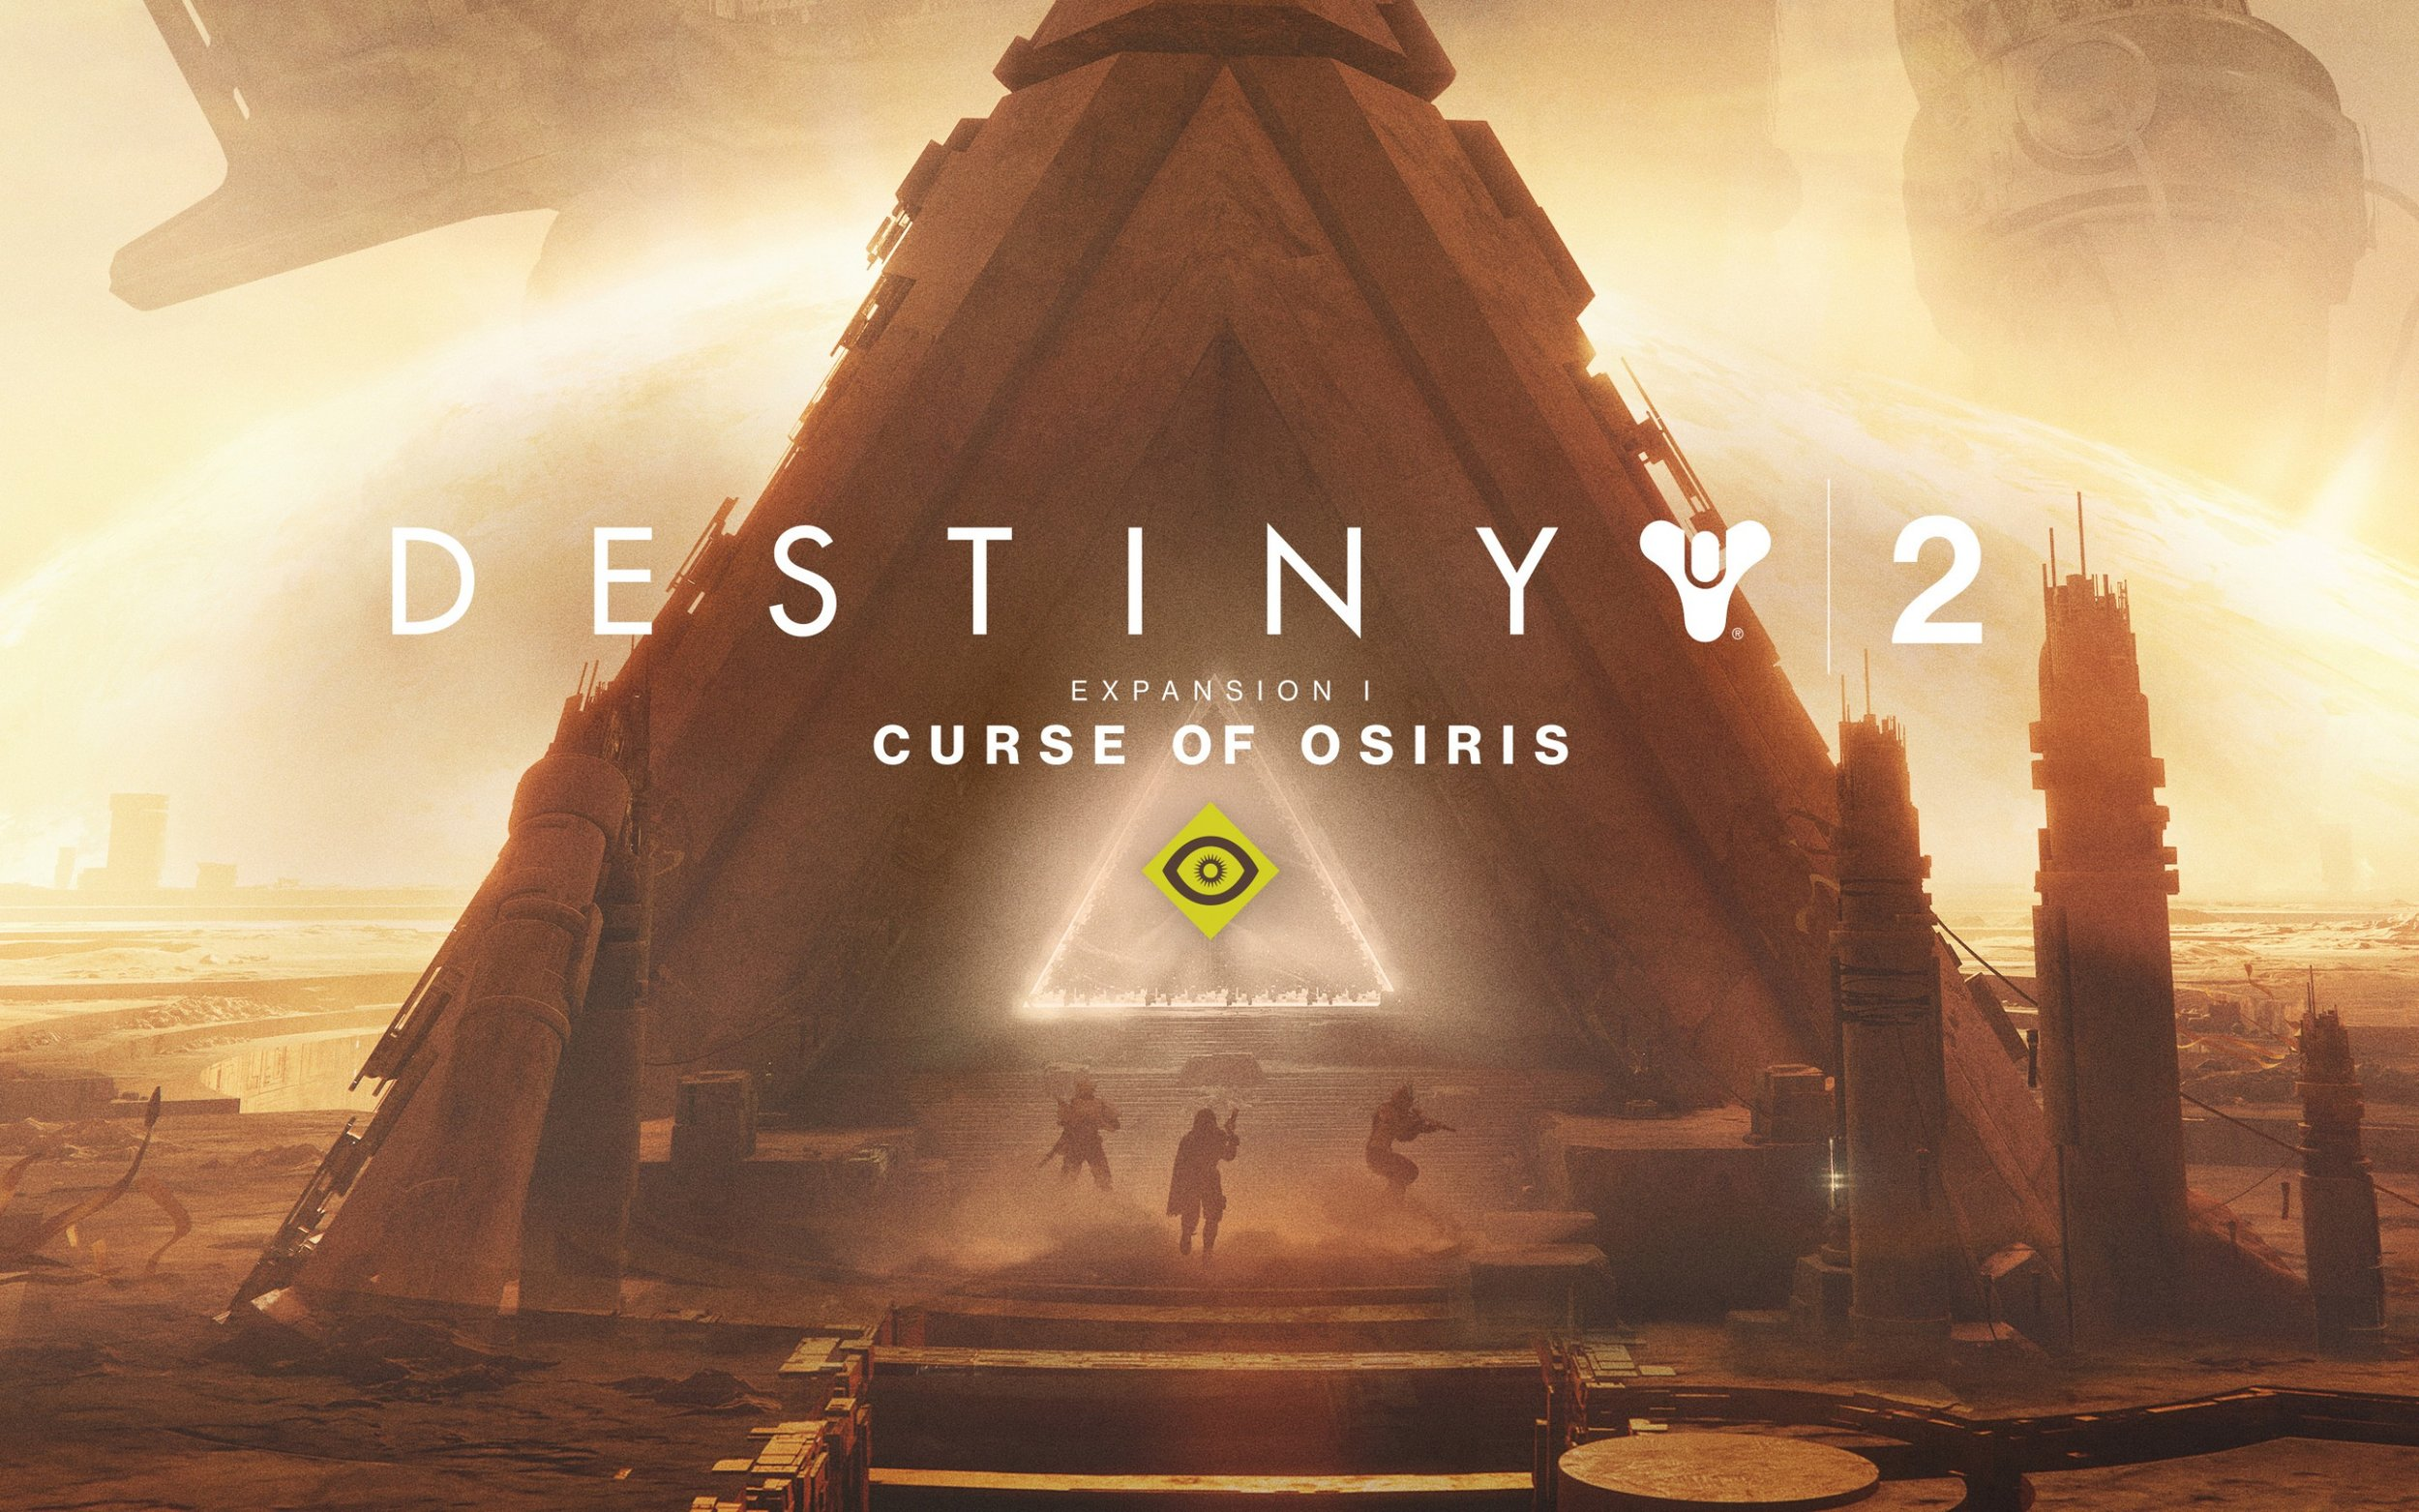 destiny-2-2880x1800-curse-of-osiris-dlc-expansion-1-11284.jpg